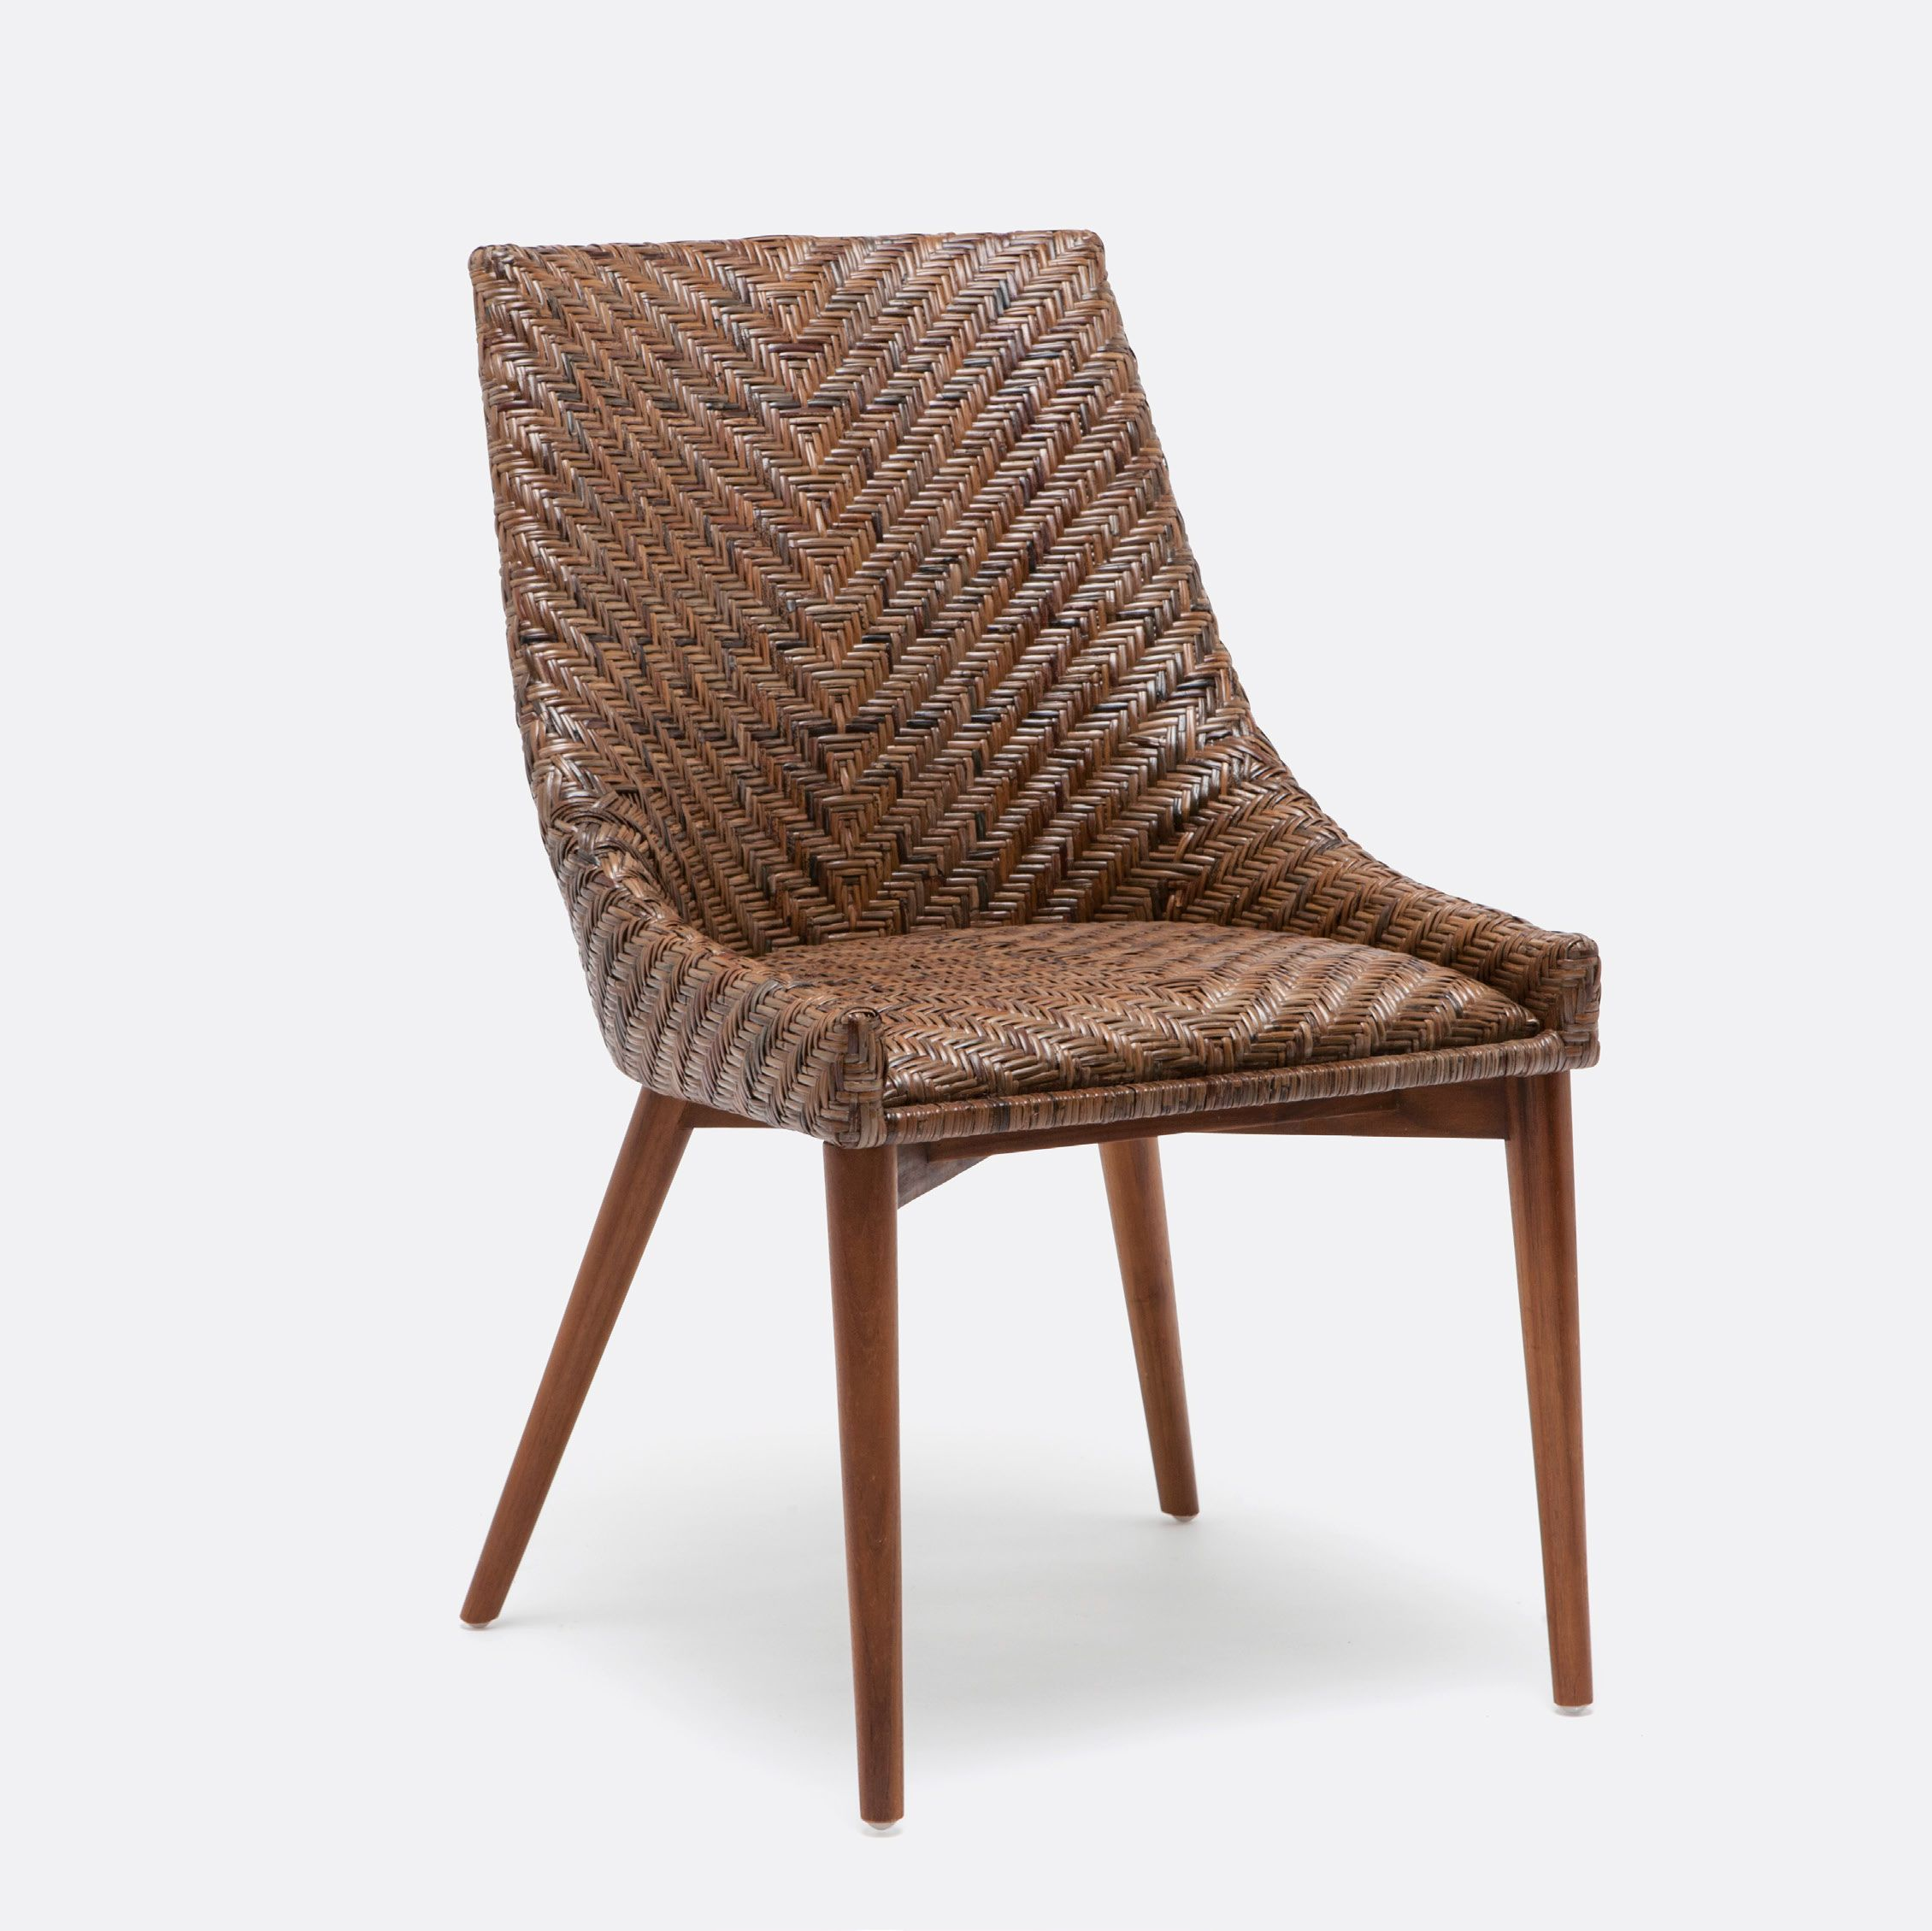 rattan dining chairs woven rattan dining chair VPLANQY